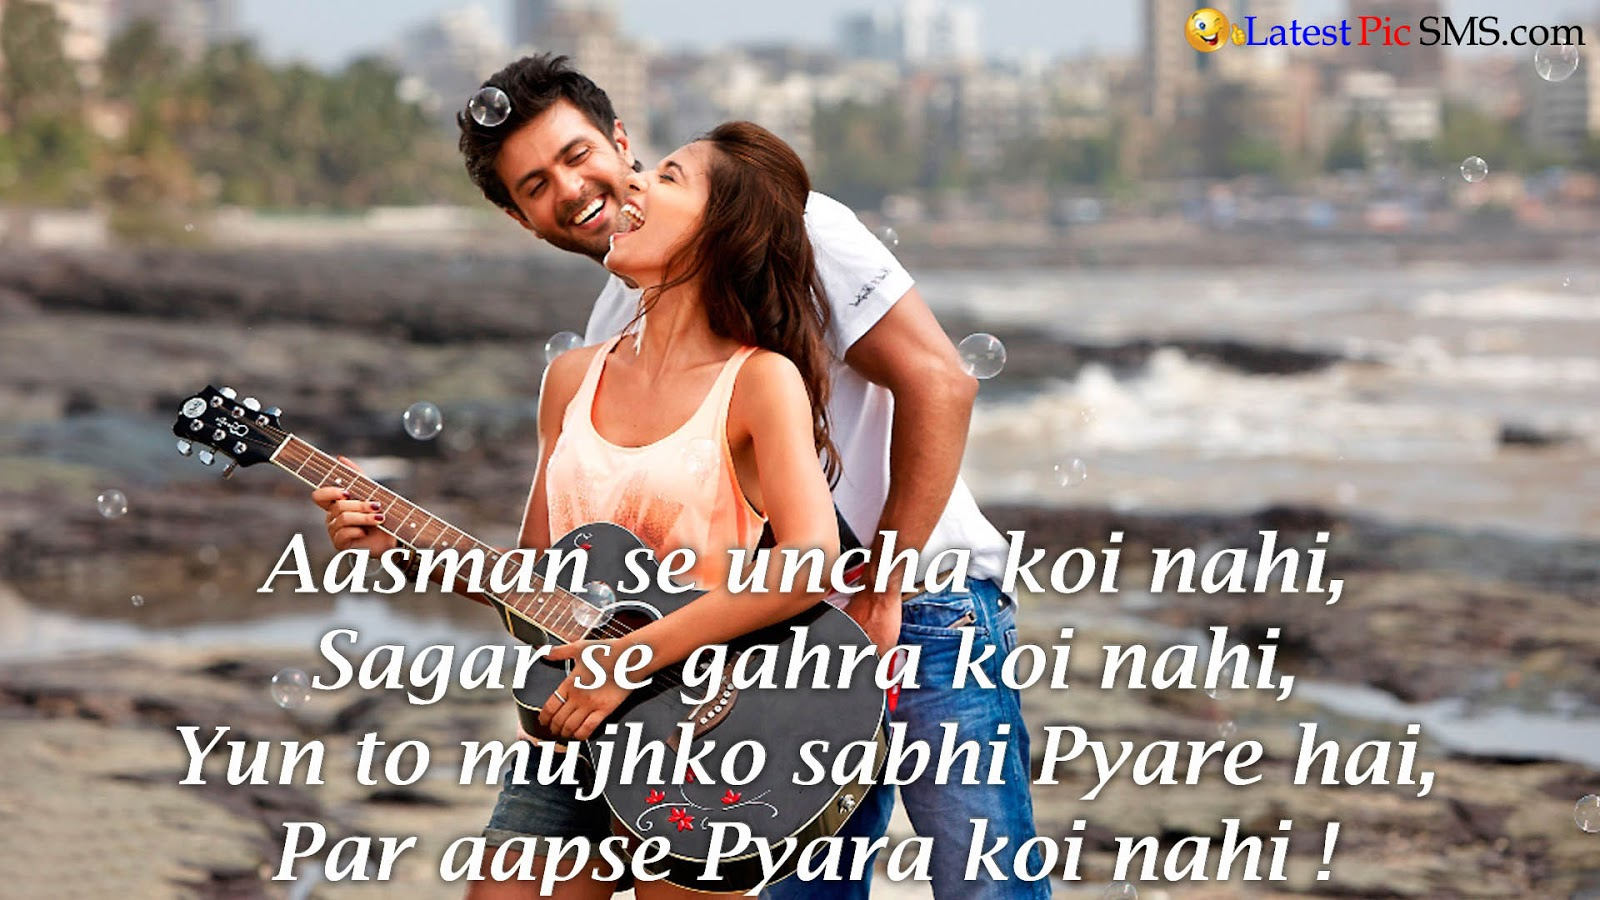 true love Shayari Quotes in Hindi